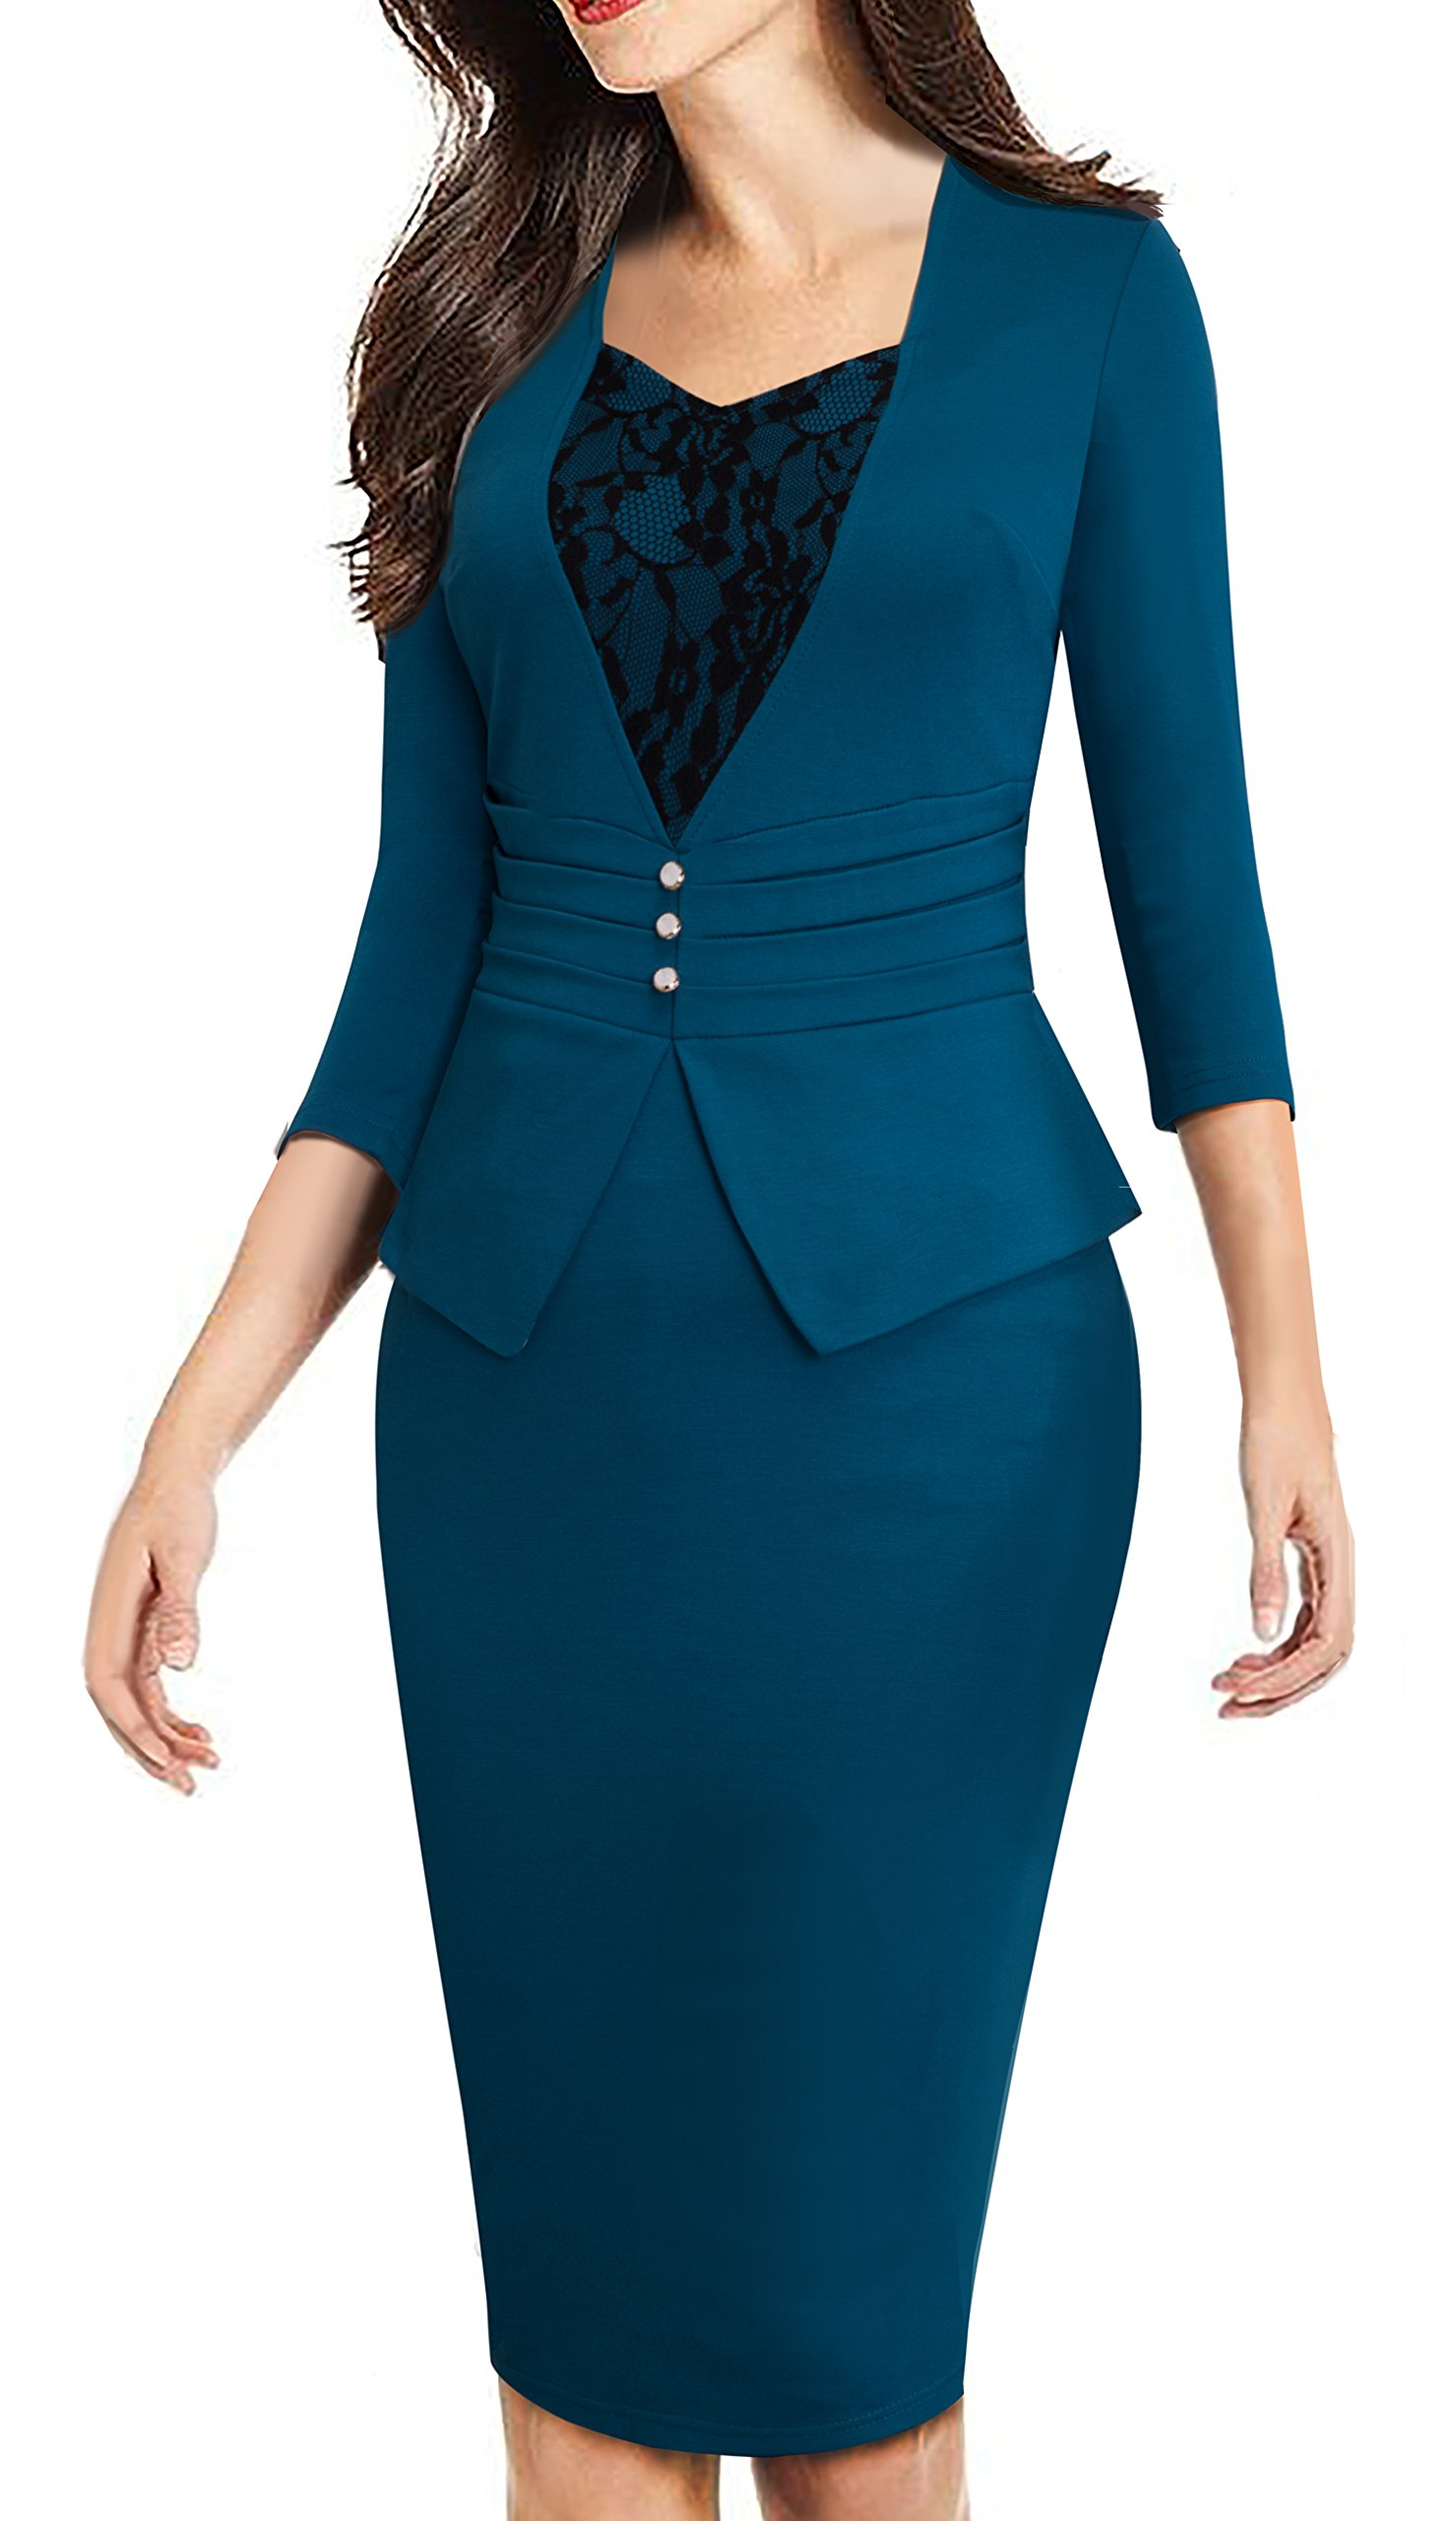 HOMEYEE Women's Elegant Business 3/4 Sleeve Lace Retro Pencil Sheath Dress B361 (8, Teal)